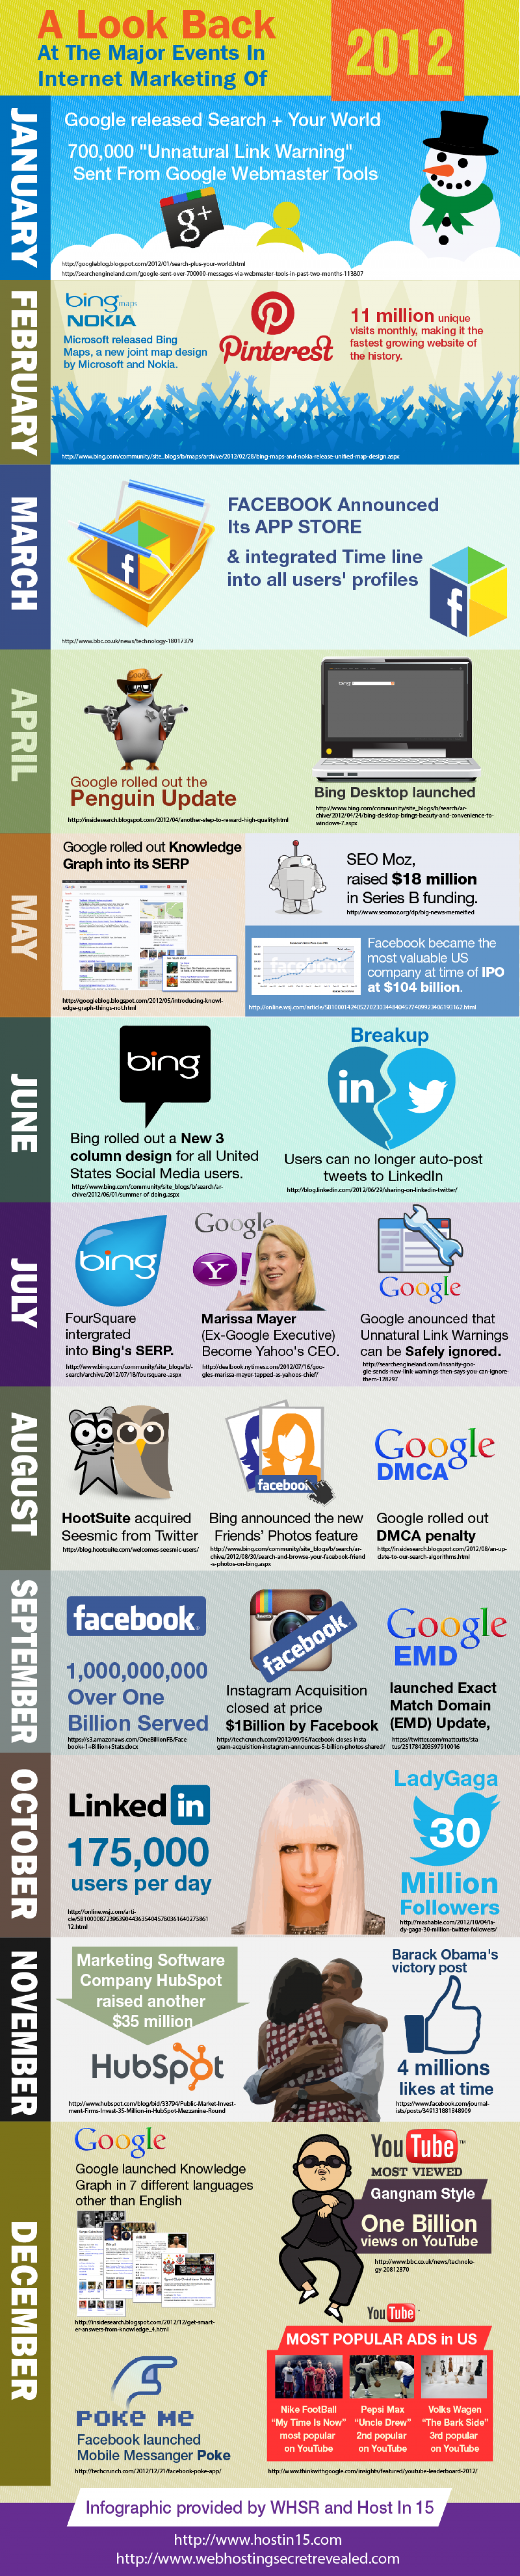 Look Back at 2012 Infographic